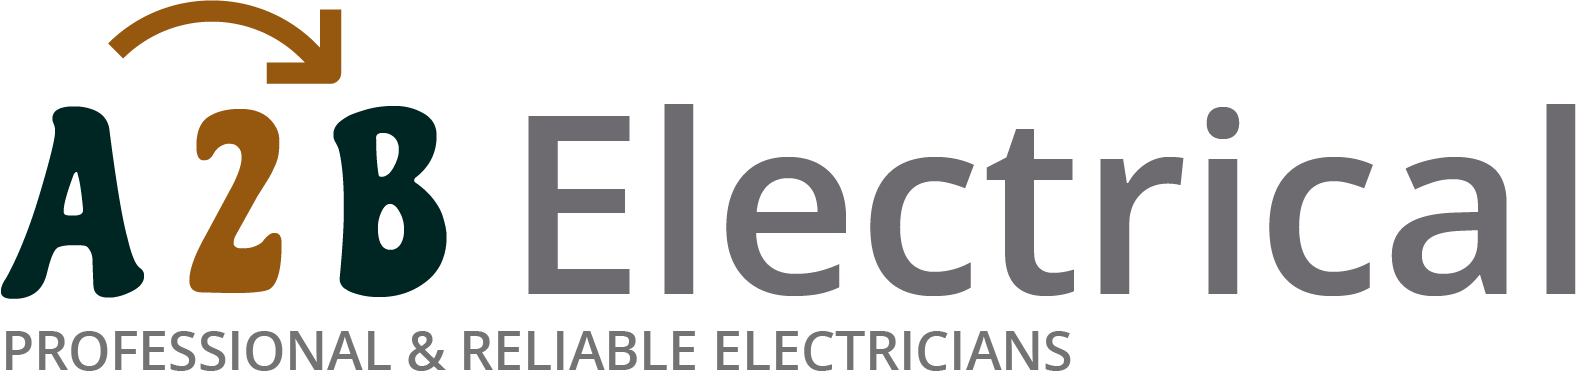 If you have electrical wiring problems in Chelmsford, we can provide an electrician to have a look for you.